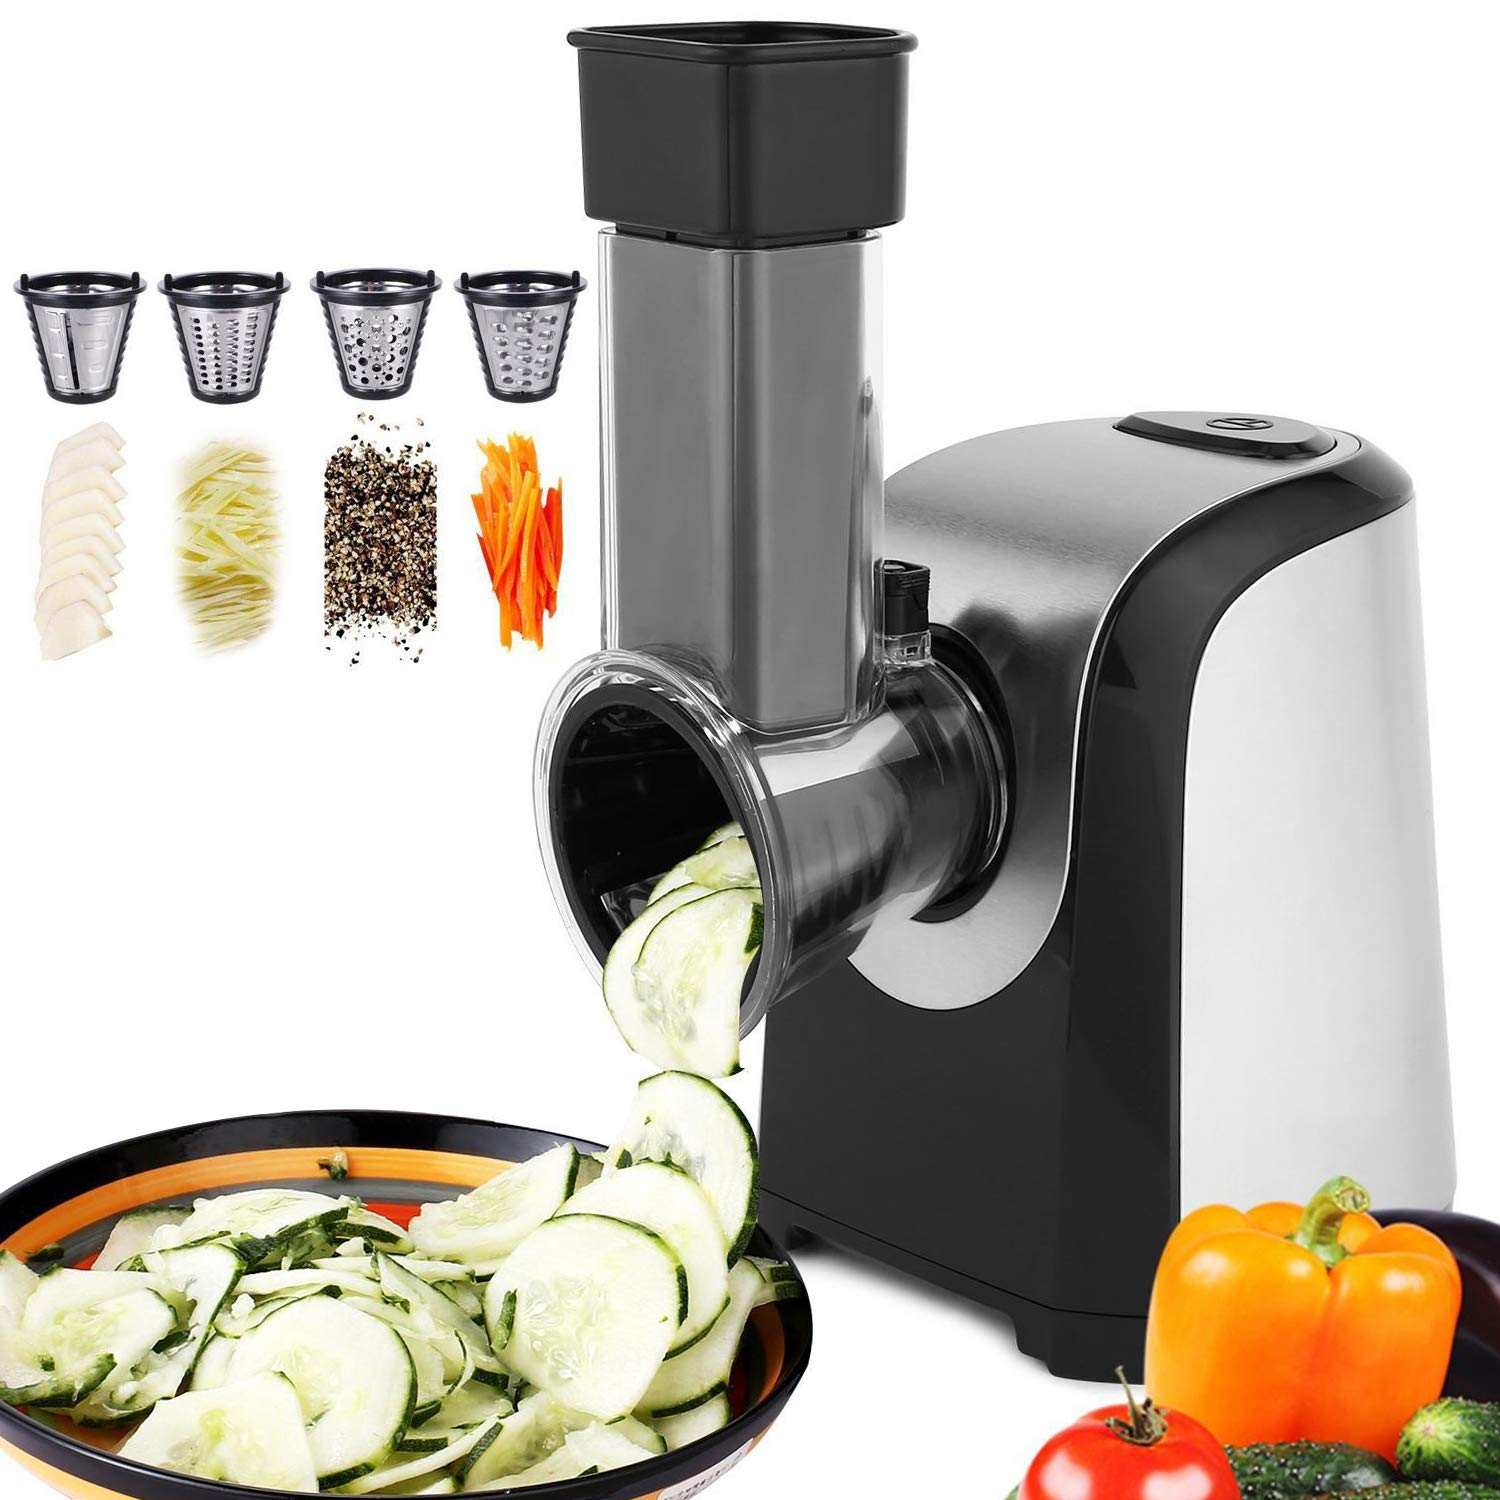 Hauture Professional Salad Maker, Electric Slicer Shredder,Chopper